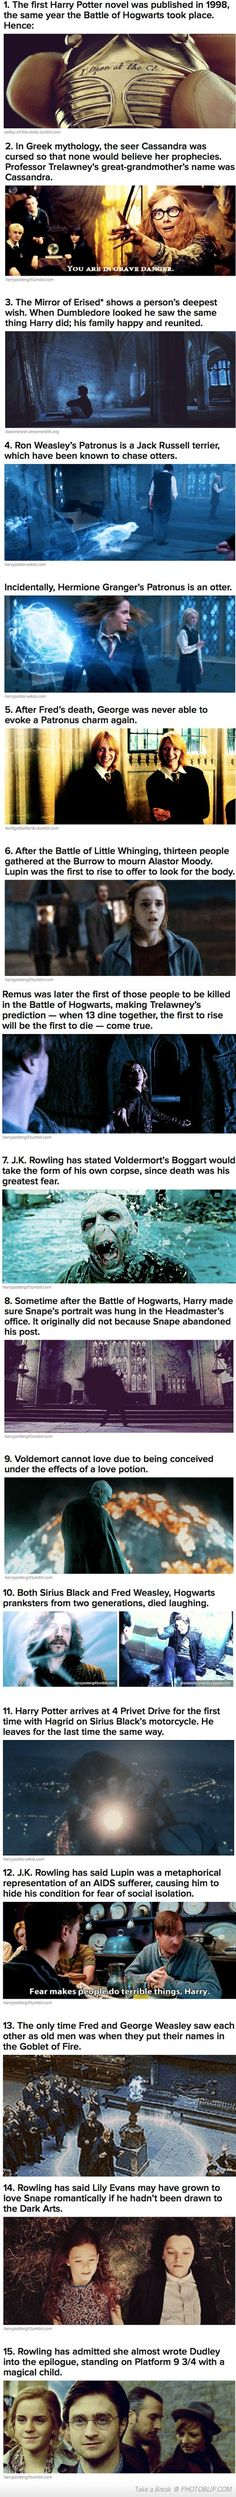 cool Harry Potter facts more funny pics on facebook: https://www.facebook.com/yourfunnypics101 I love these...